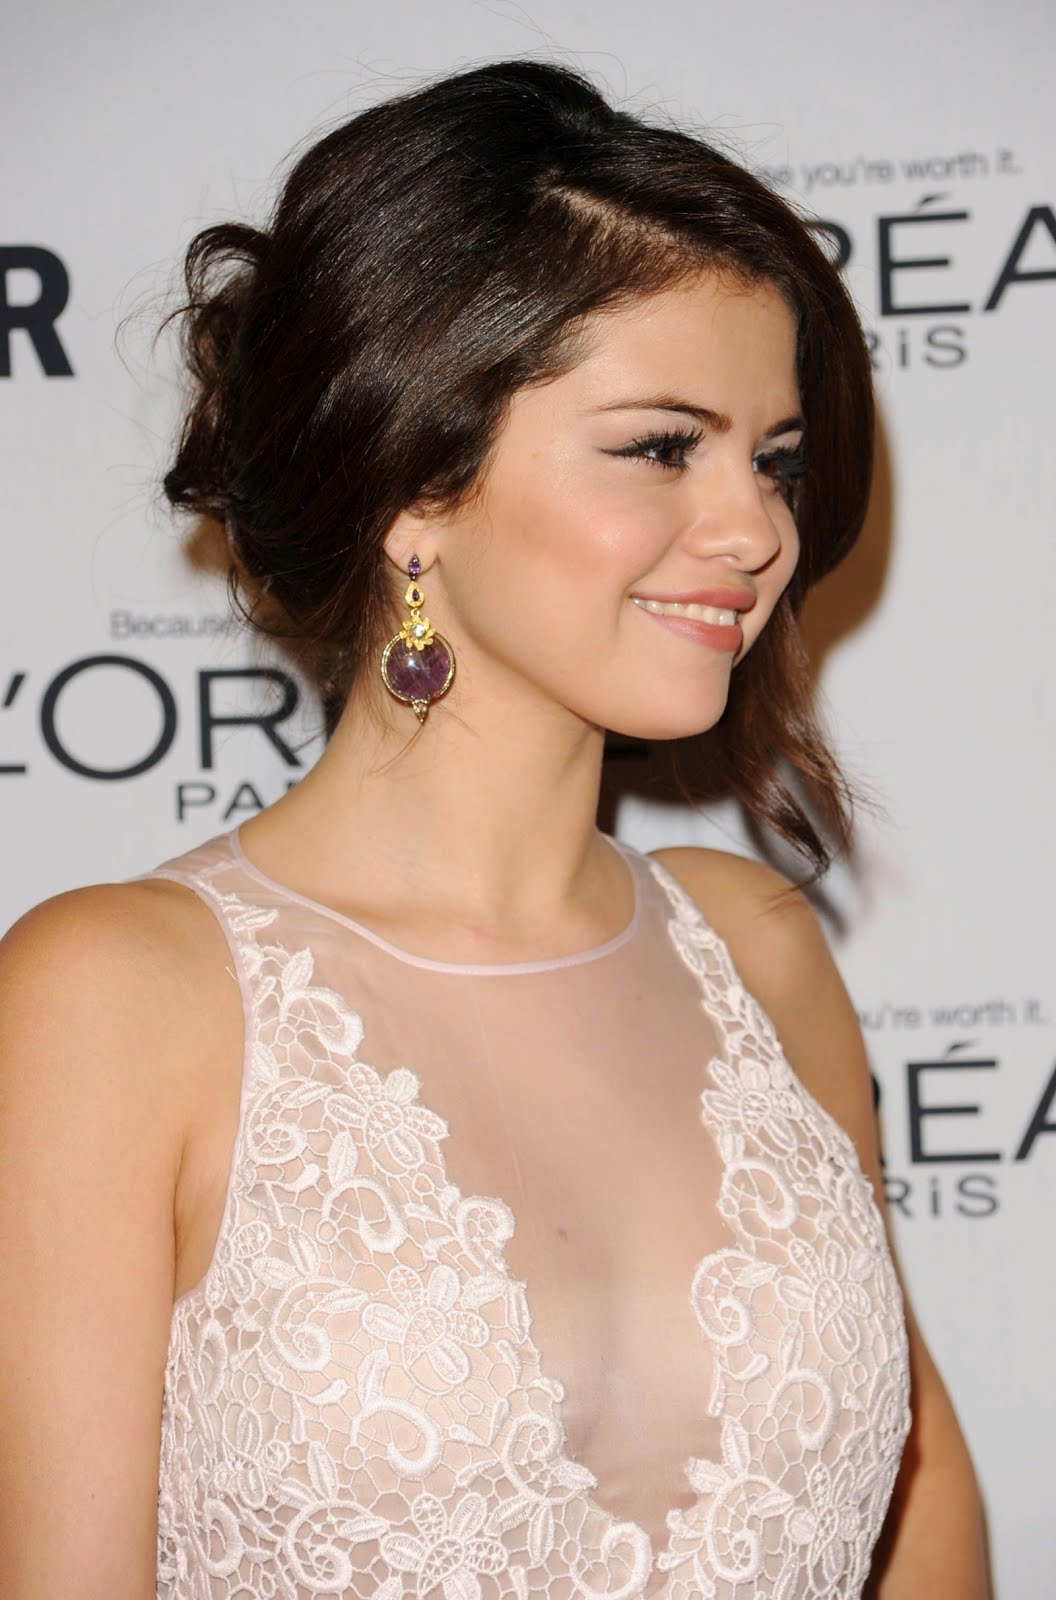 Nude Naked Pictures Wallpapers Of Selena Gomez Glamour Women New